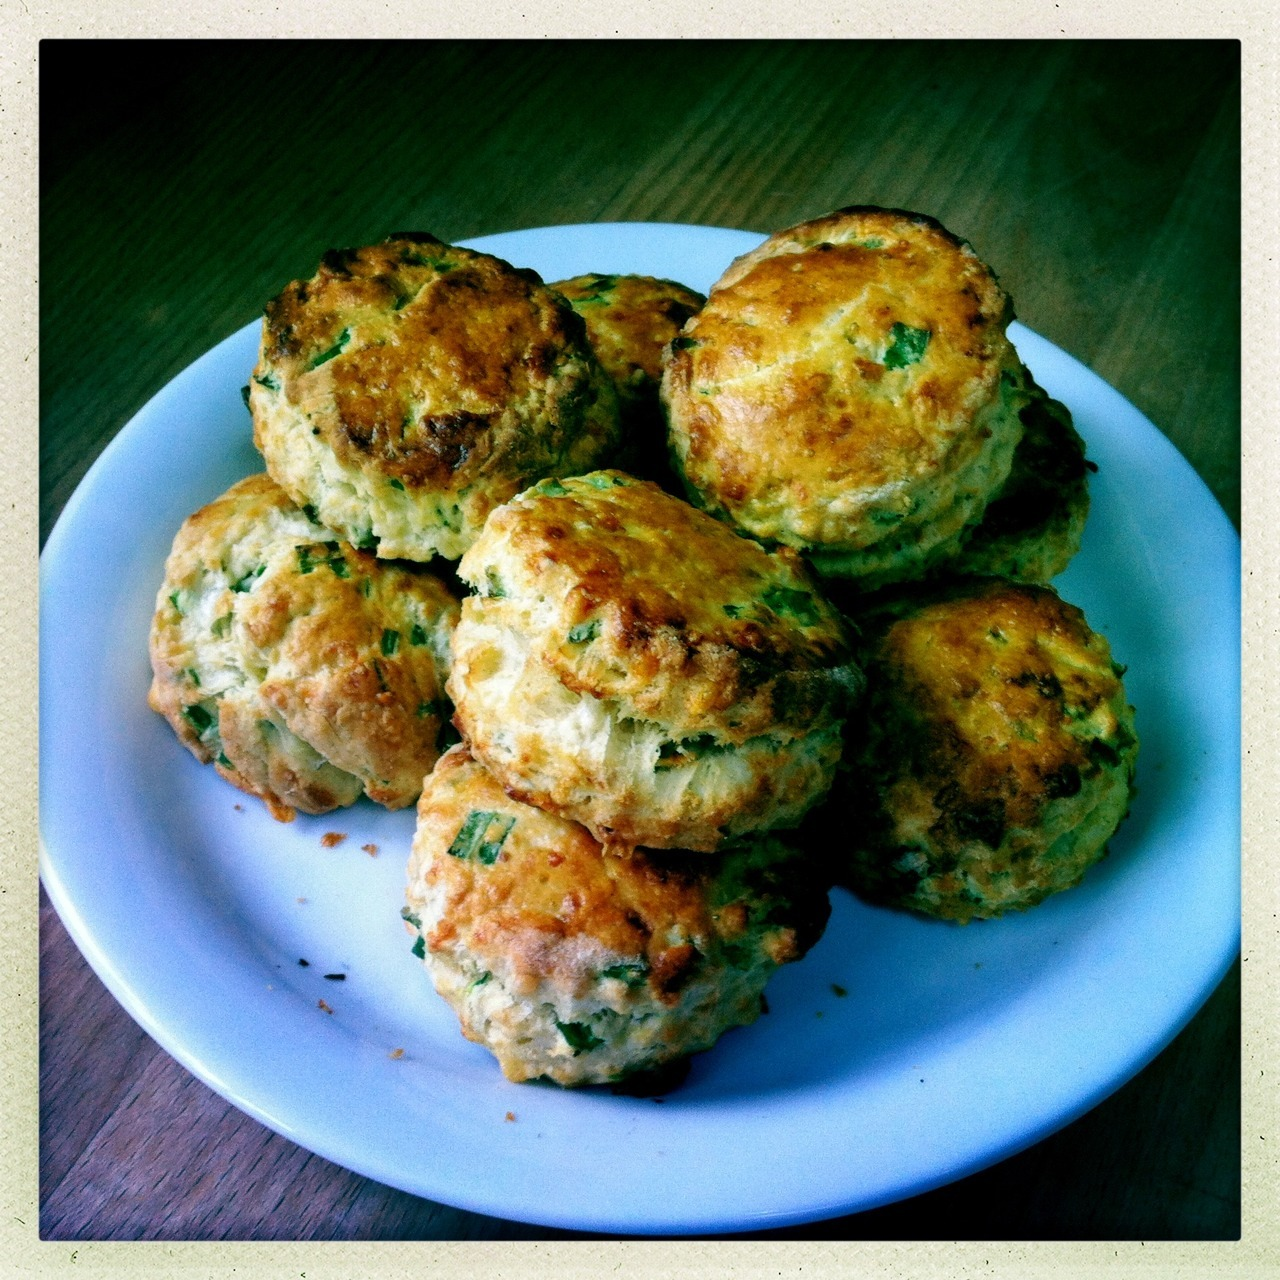 Cheese and wild garlic scones Whilst there's not much growing in the garden this time of the year, it's one of the best time for foraging as tender spring greens are beginning to appear. My favourite and luckily one of the most abundant is wild garlic, that grows in damp woodlands and along shady riverbanks all over the UK. It's similar to the north American plant known as ramps and its old English name ramsons is obviously linked. Unlike across the Atlantic, over here we eat the green leaves and not the small bulbs, which is presumably why it's becoming quite rare and even protected in some parts of America whilst in the UK it grows all over the place. I love the stuff and try and eat as much as I can during its short season, such as soup and risotto, or just added to a salad. These scones are something I dreamed up cycling home on a chilly damp day. Ingredients 8oz / 250g self raising flour 2oz / 50g butter 1oz / 25g strong cheddar, grated small bunch of wild garlic, chopped 1 egg, beaten 4 fl oz / 100ml milk Rub the butter into the flour and mix in the cheese and garlic. Mix the egg and milk together and gradually add to the mixture, kneading gently with your fingers until you have a soft dough. Keep a little of the liquid aside for later. Roll out on a floured surface to about 3/4 inch or 2cm thick and cut into rounds using a 2 inch / 5 cm cutter. Brush the tops with the remaining milk and egg mixture. Bake in a preheated oven at 220°C / gas mark 7 for 10 - 12 minutes. Cool on a wire rack, but try and eat them while they're still warm with plenty of butter.